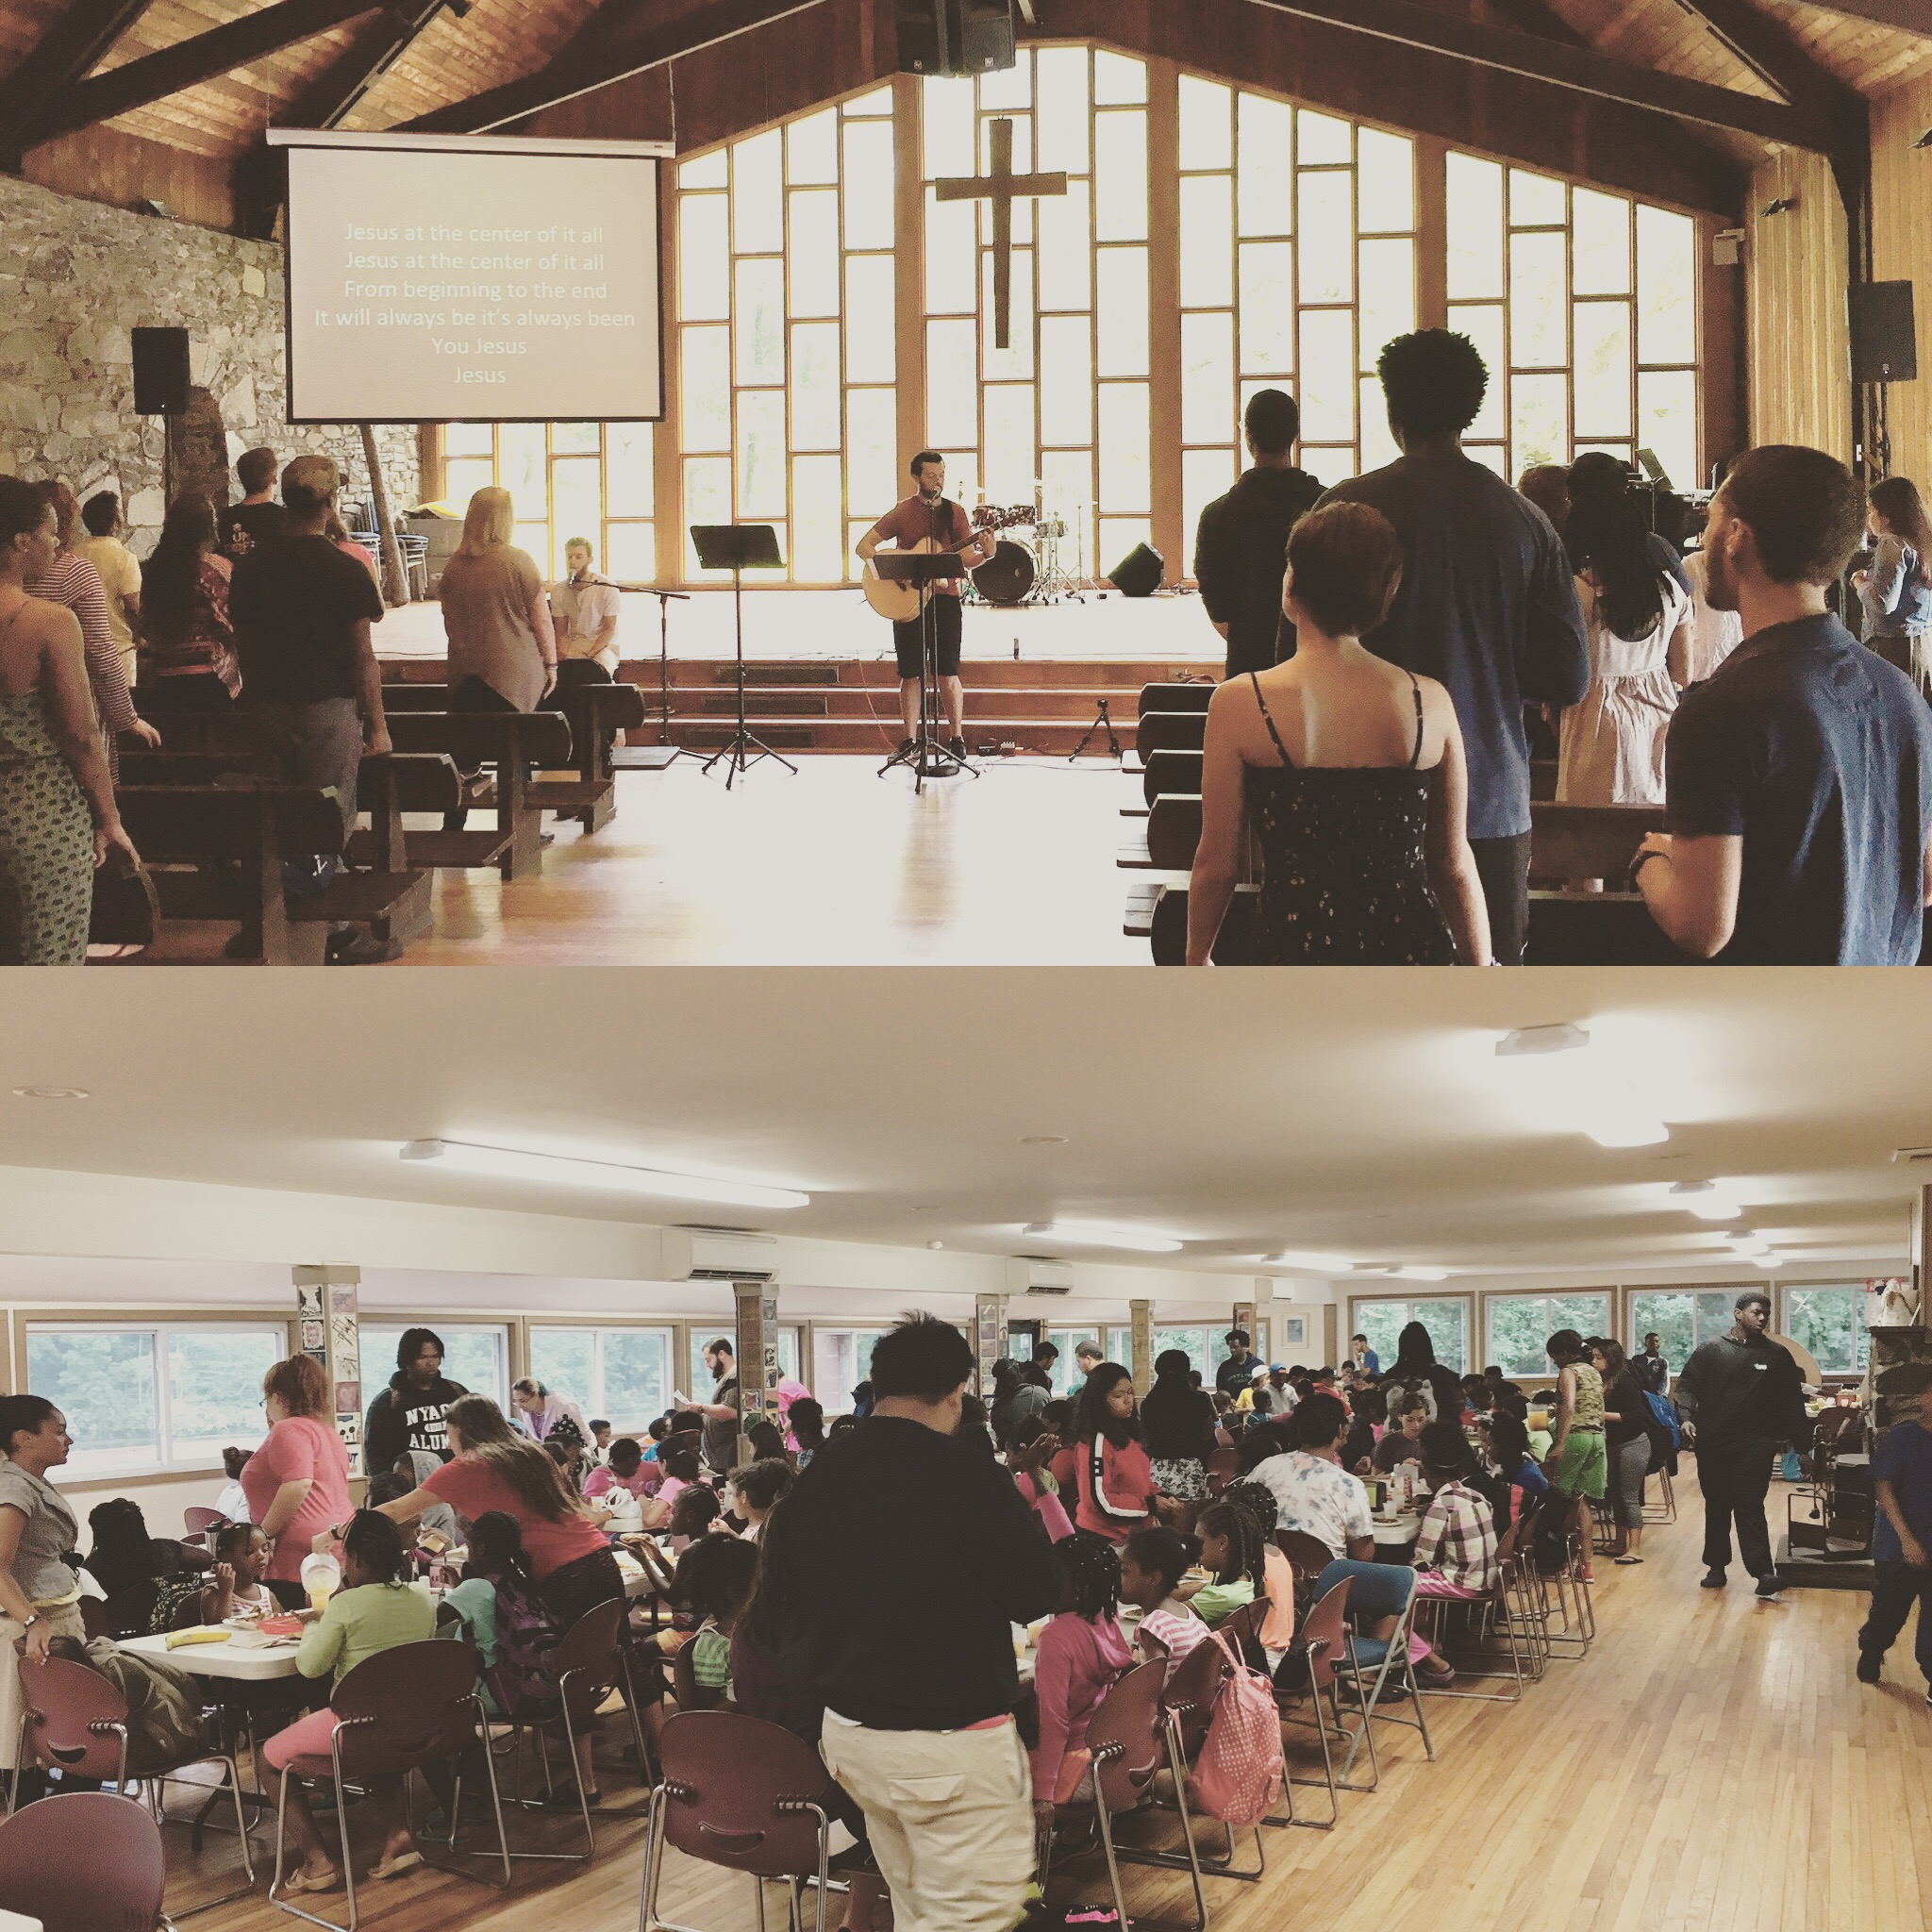 Chapel service for the 80+ works serving the kids at camp and breakfast time for the campers